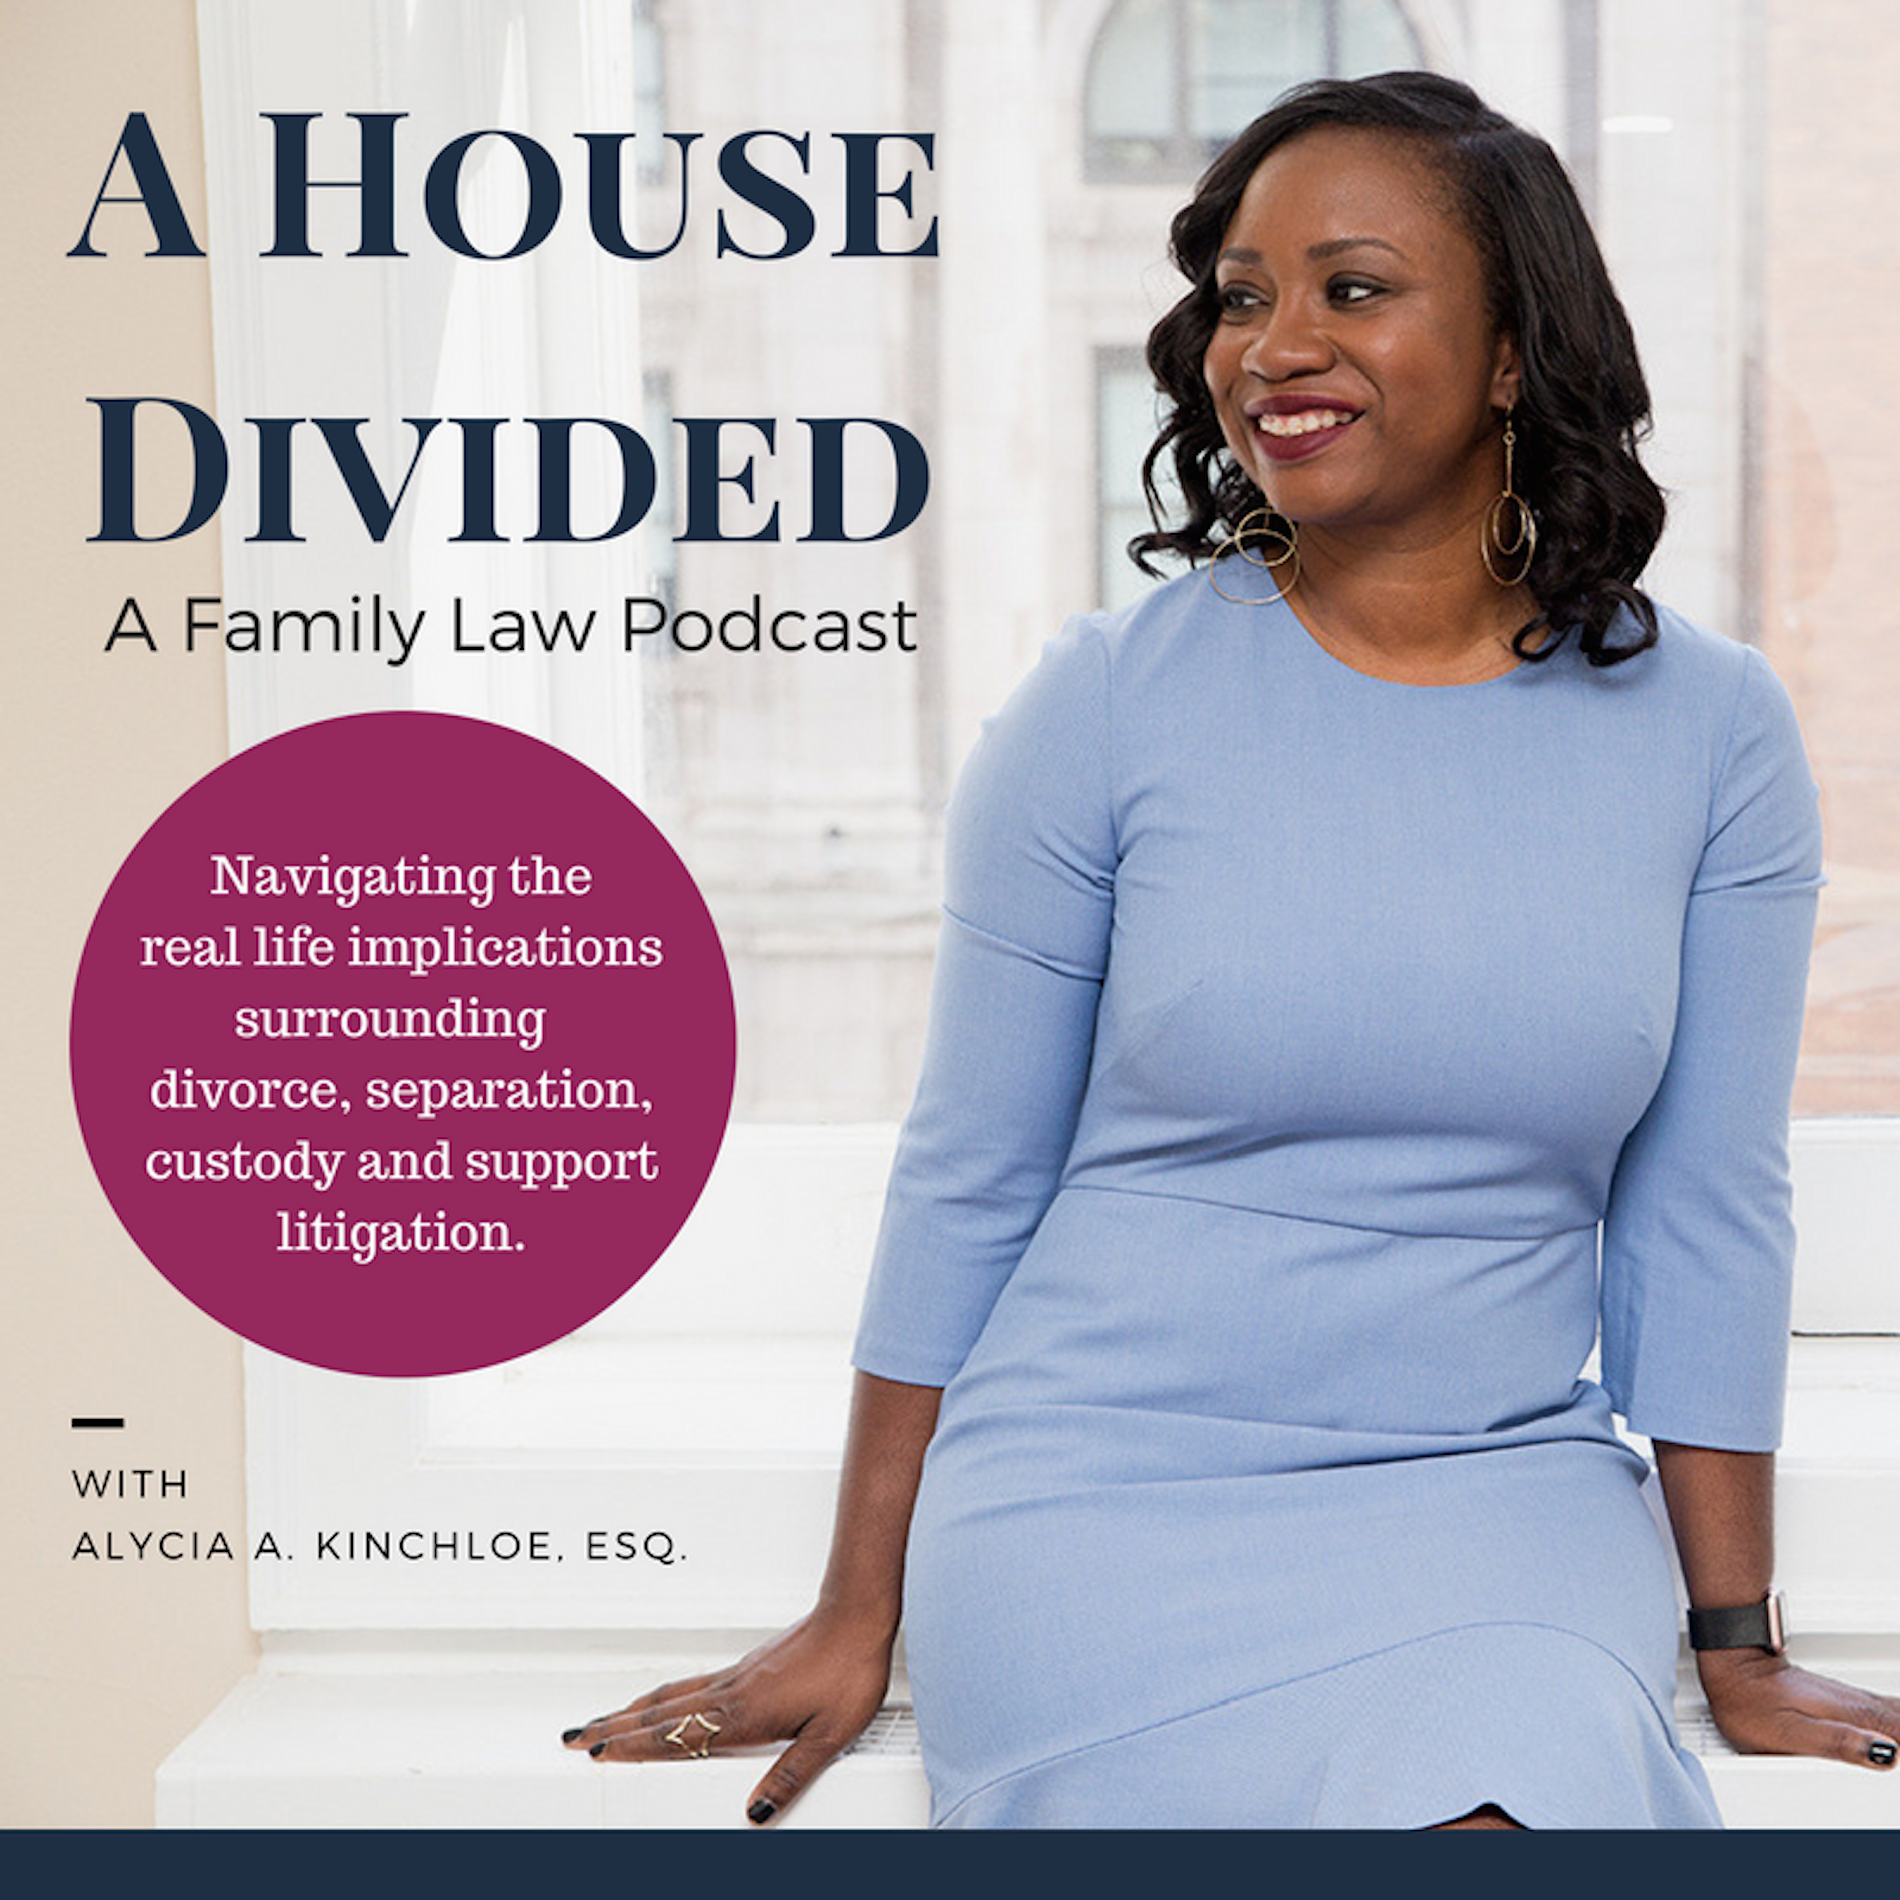 A House Divided: Practical Tips for Family Law Issues show art